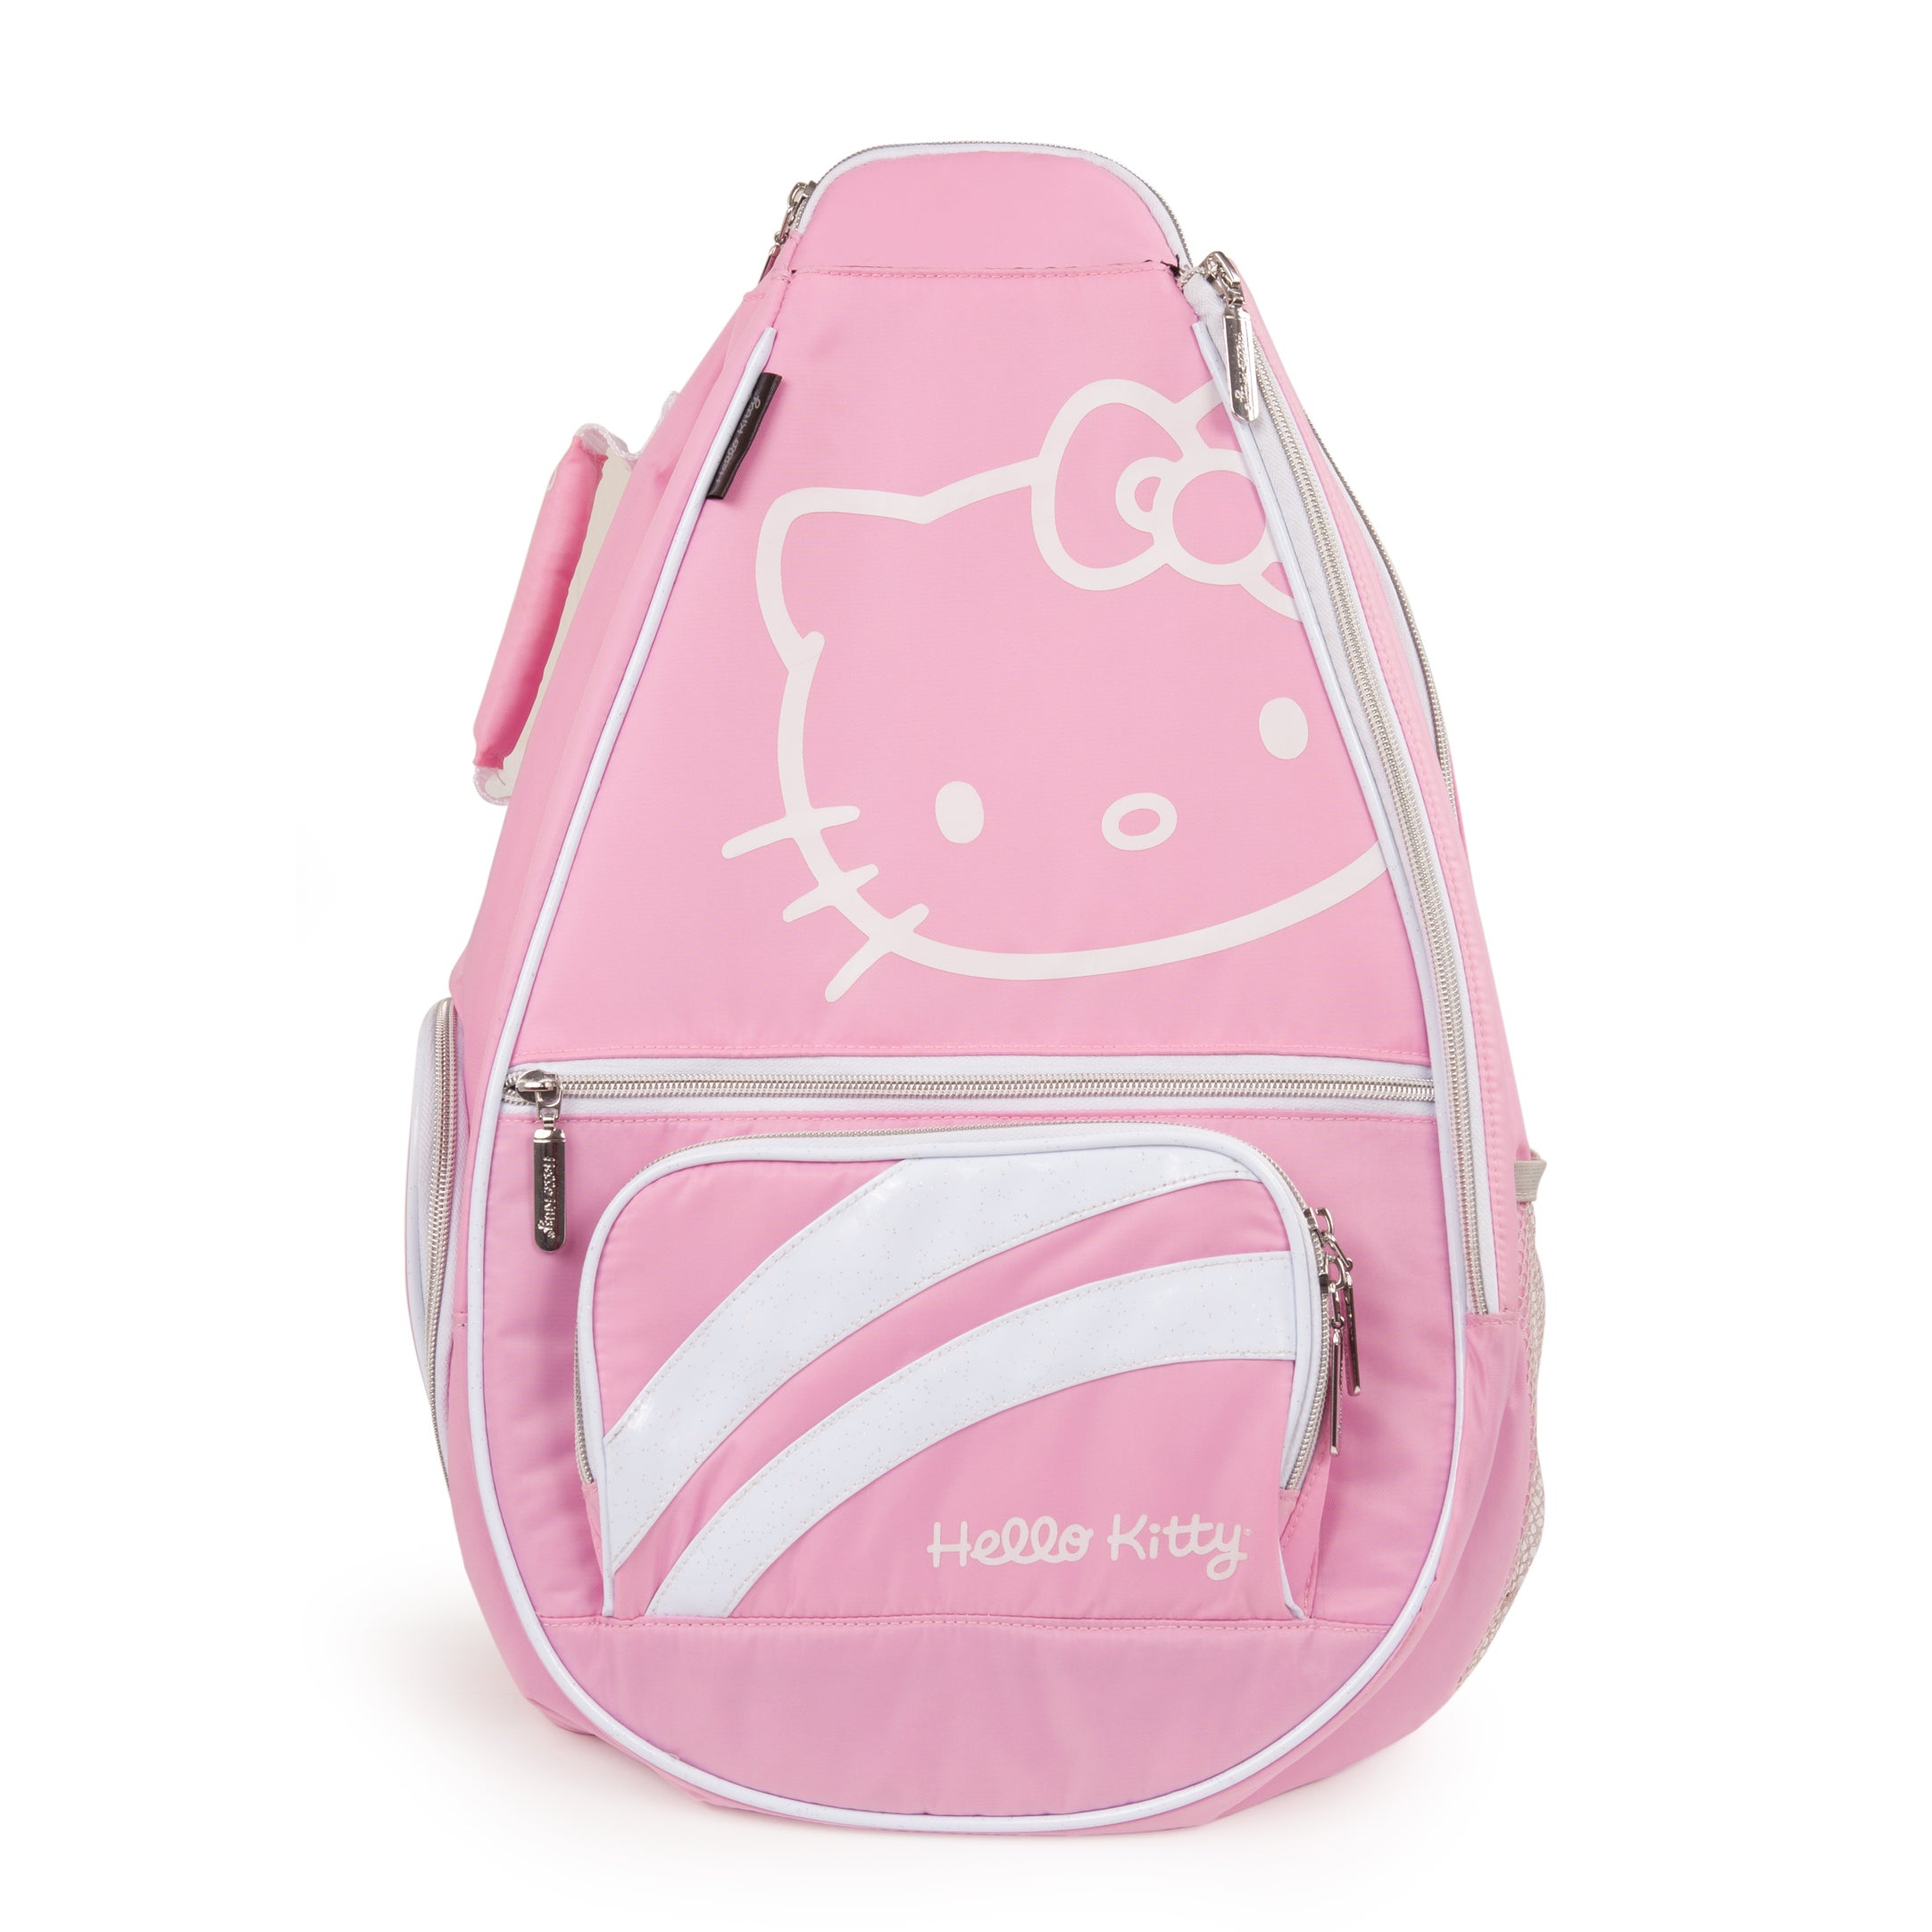 Hello Kitty Premier Collection Pink Tennis Backpack at Sears.com